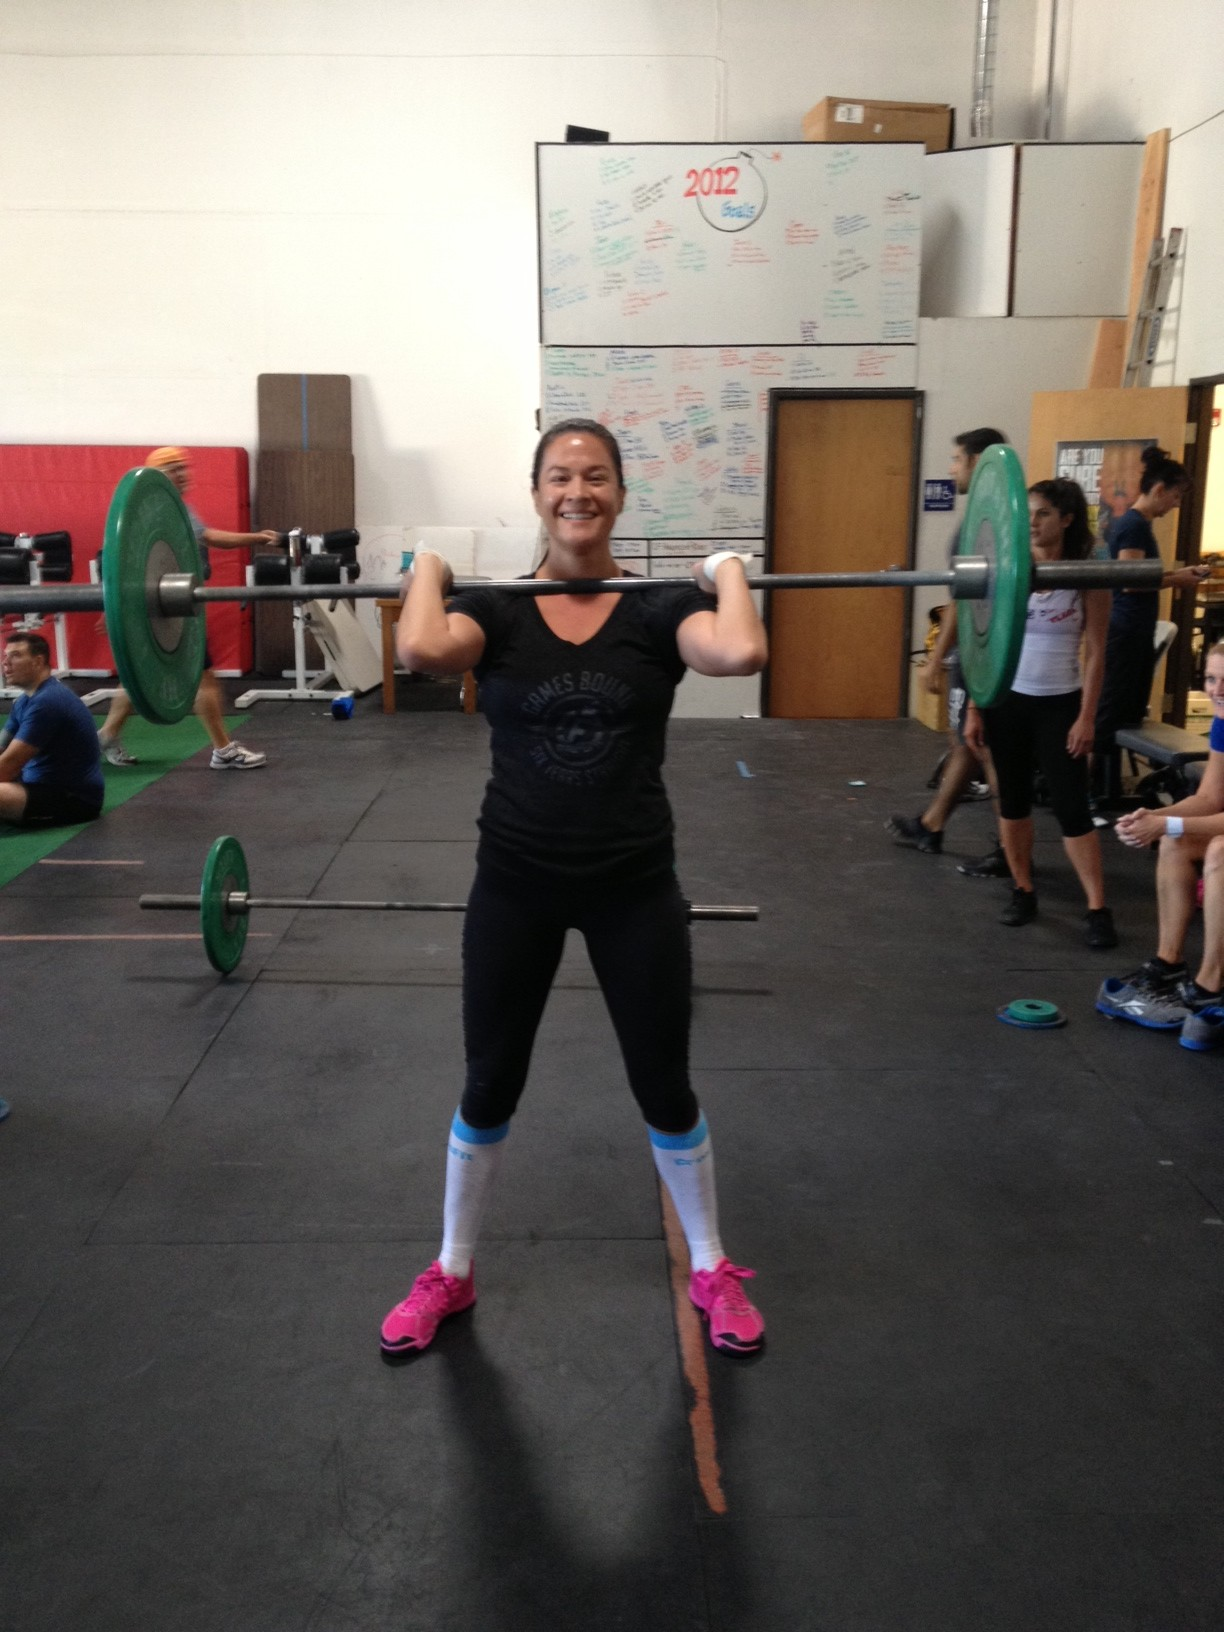 October Spotlight Athlete of the Month: Michelle Olver